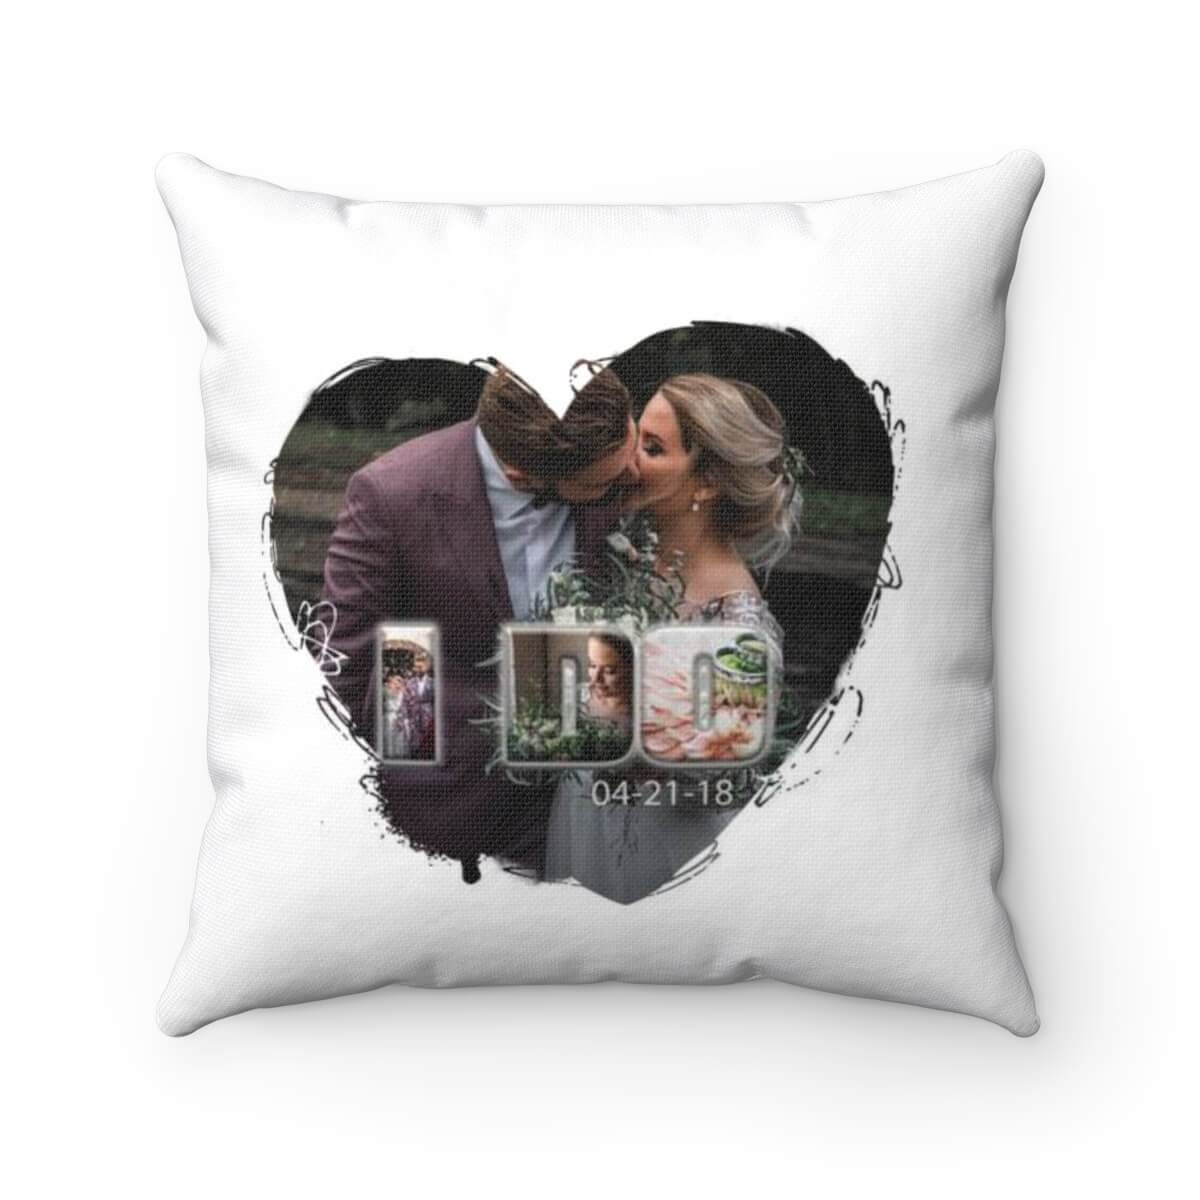 I Do Pillow - Personalized - 20x20